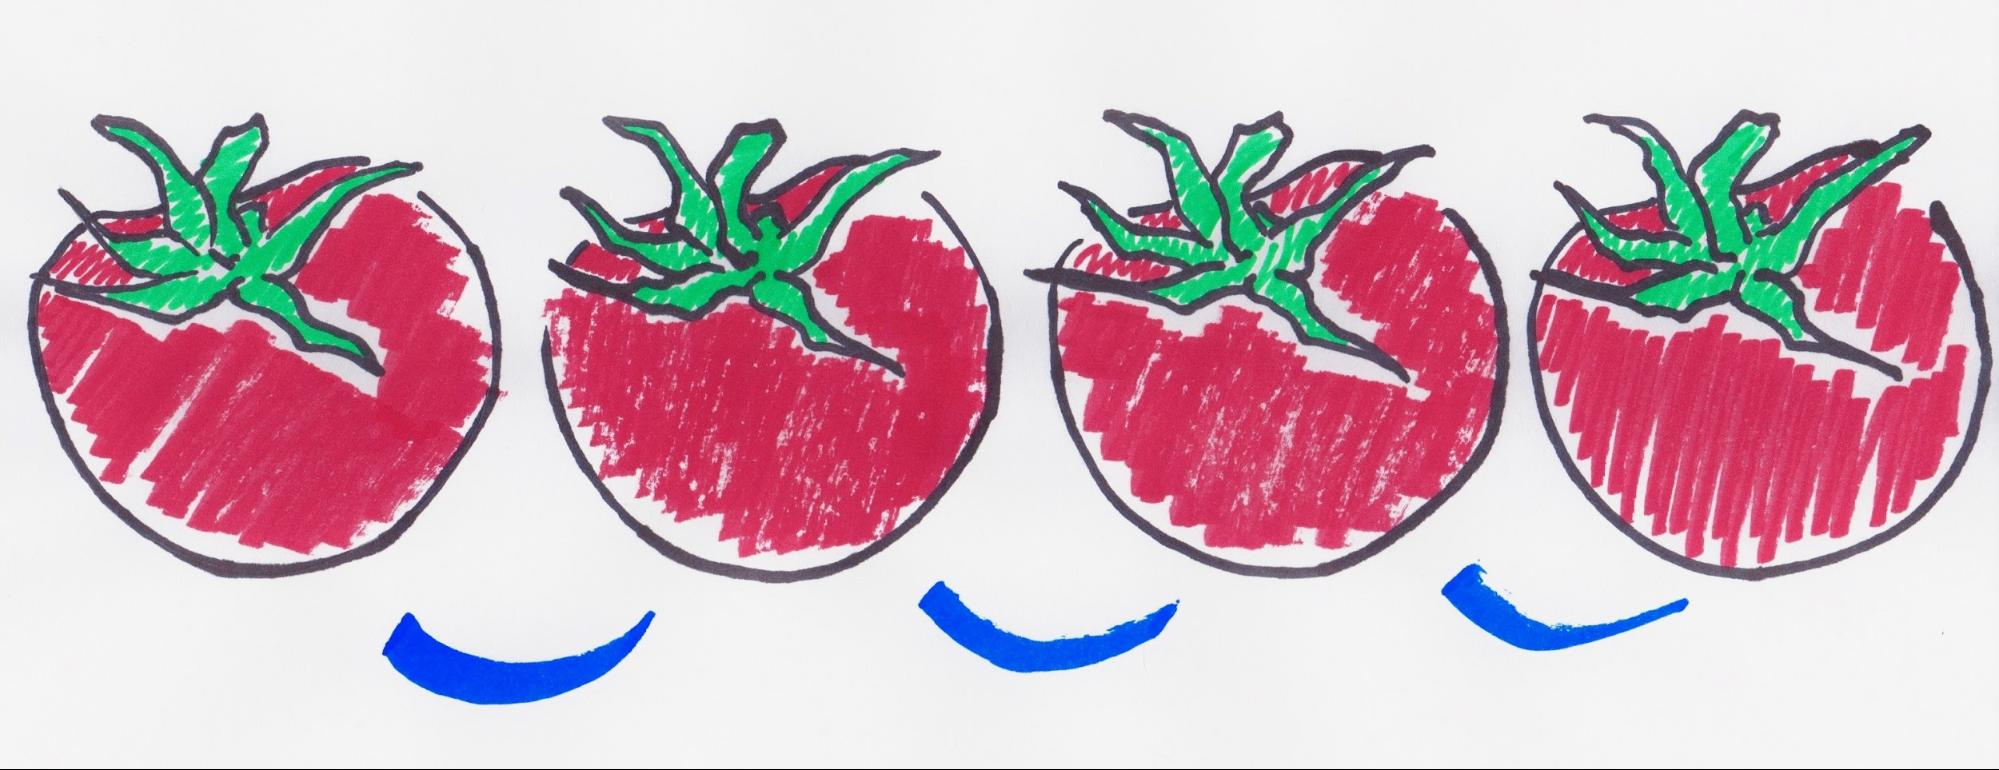 An illustration of four red tomatoes with a blue line drawn from one to the next to emphasize counting them.